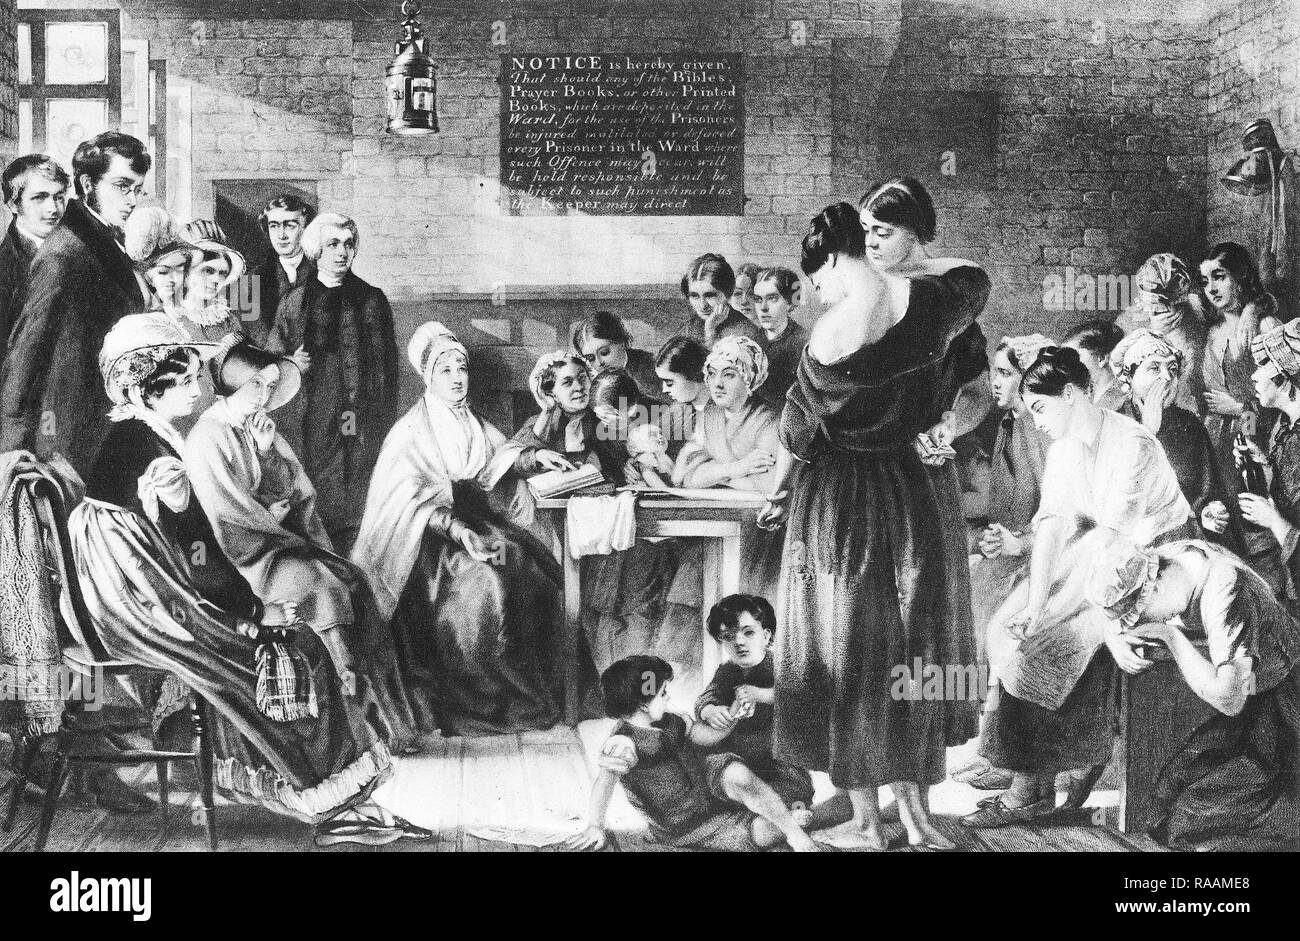 Prison reformer, Elizabeth Fry greatly improved the conditions for women held in England's notorious Newgate Prison. - Stock Image